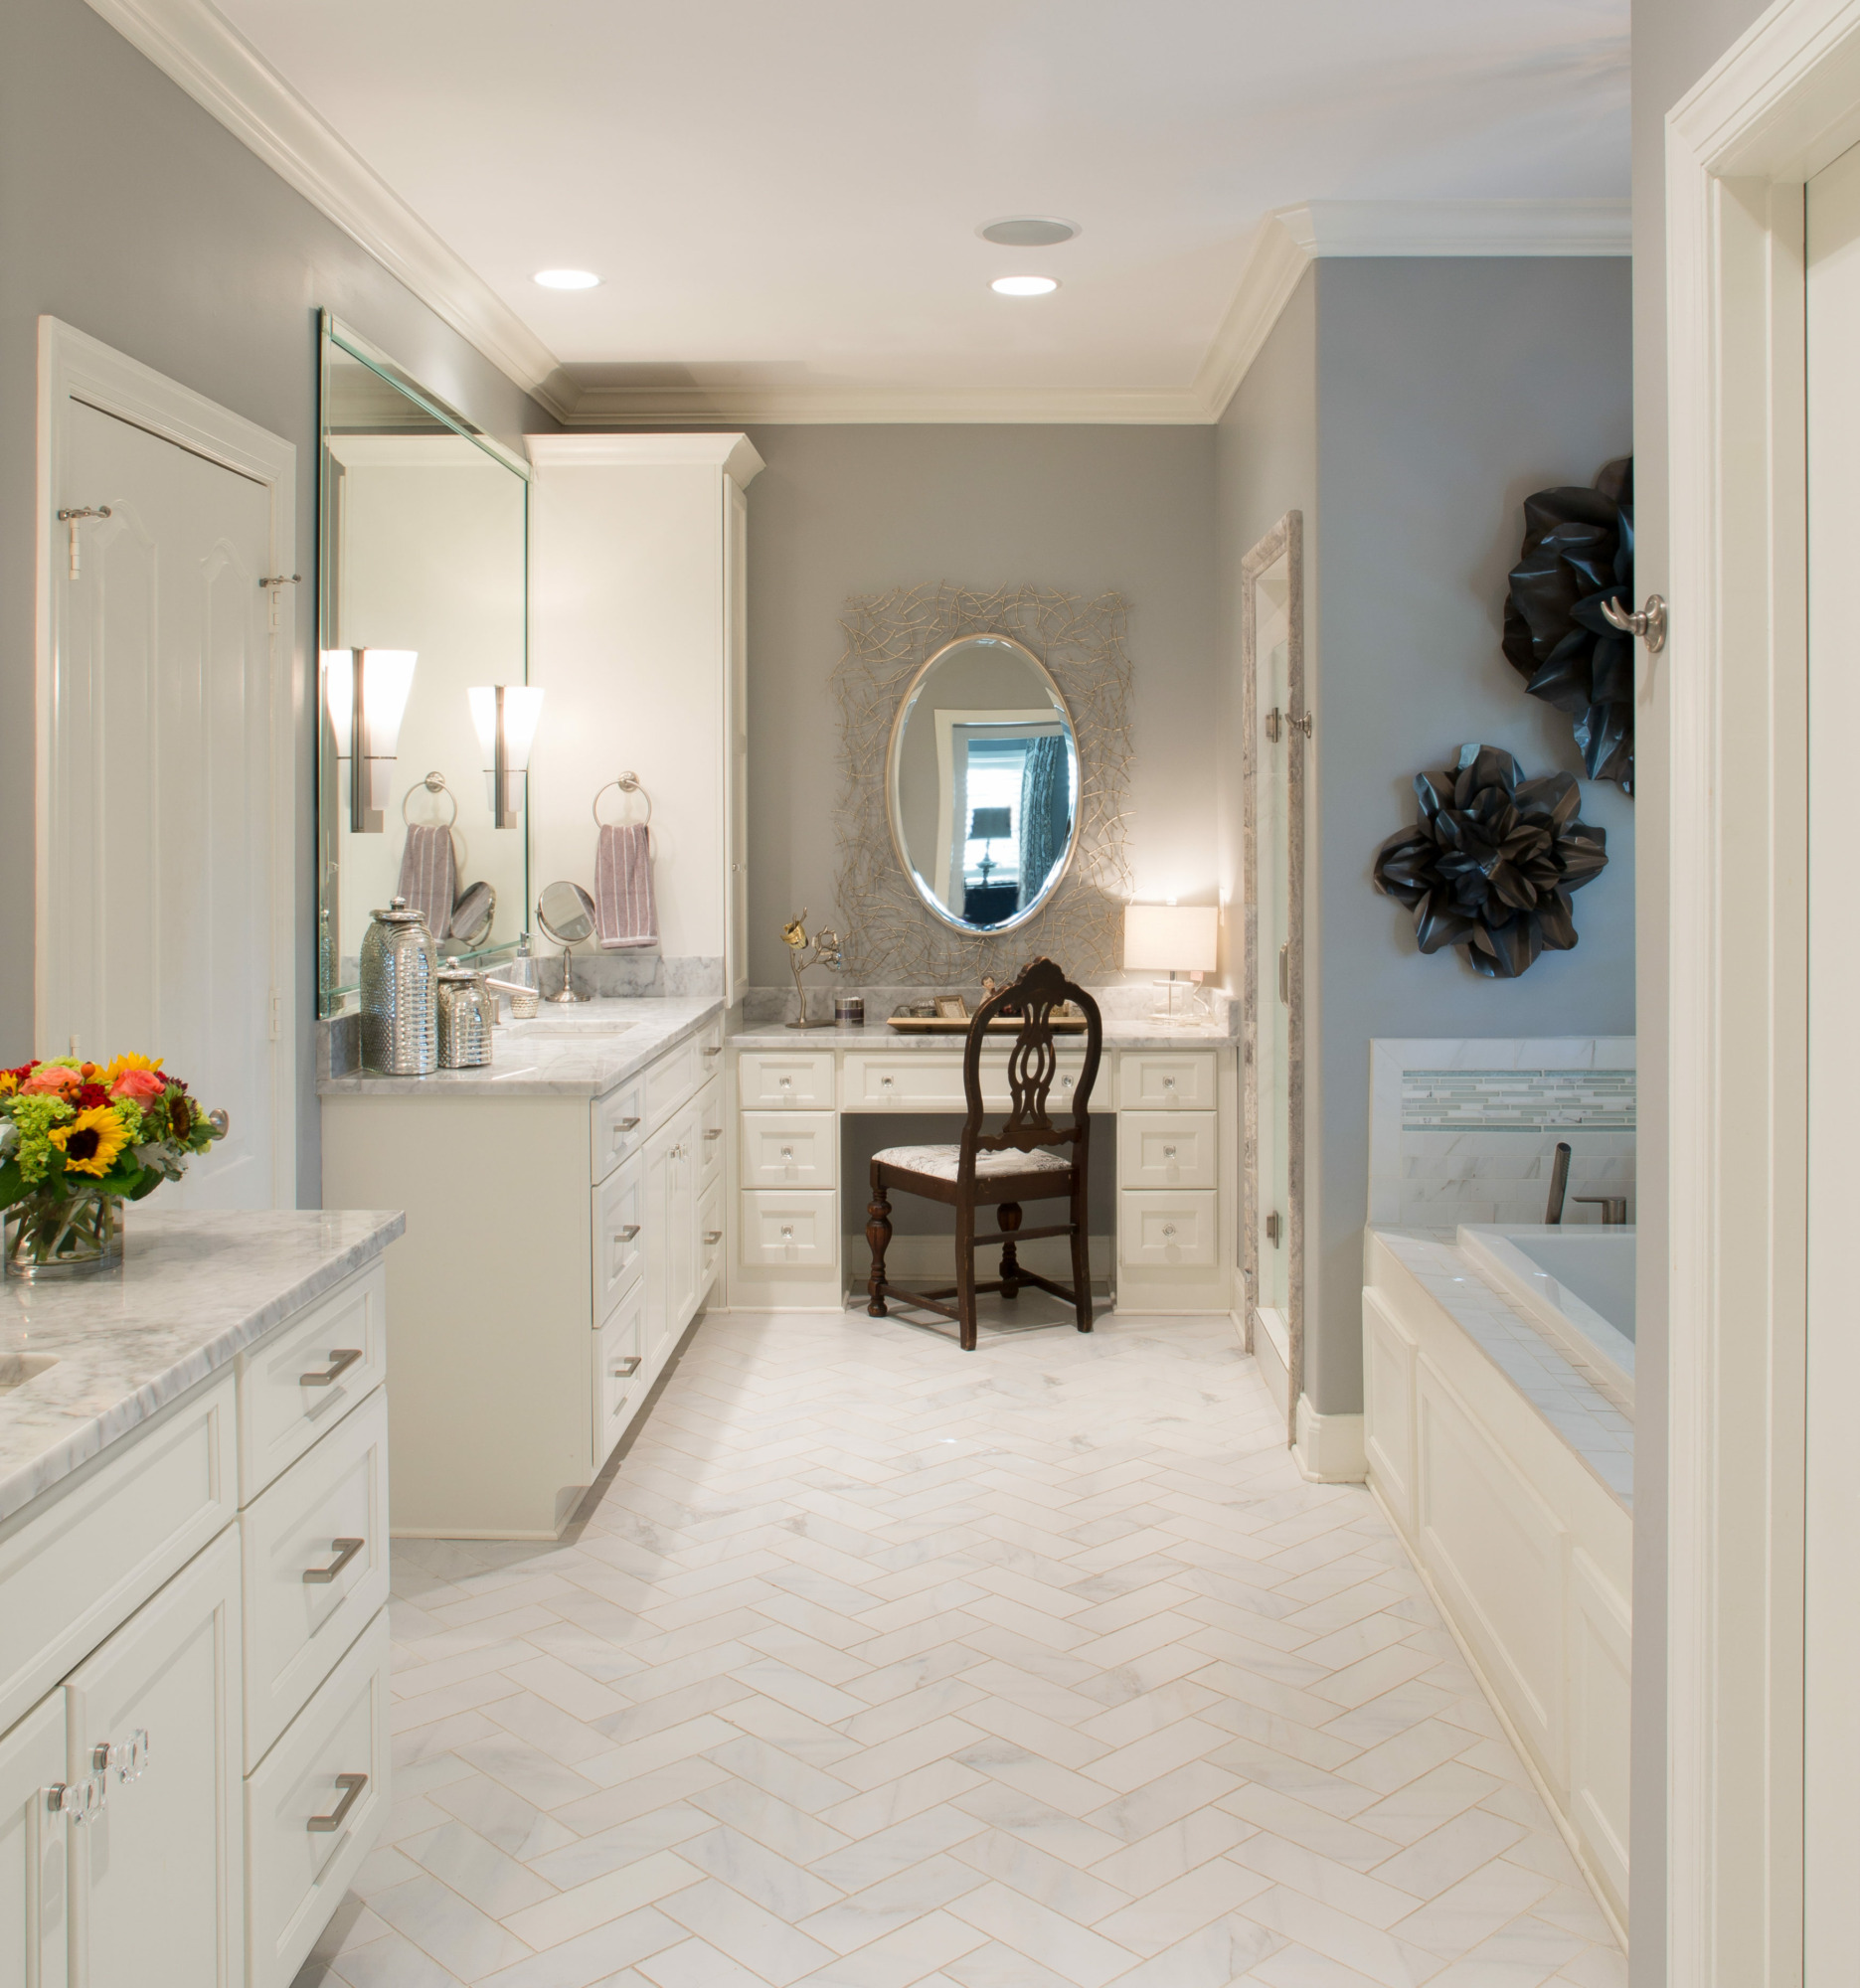 English eclectic rka construction custom cabinetry high end appliances and beautiful tile marble and hardwoods combine to make a luxurious retreat for the owners dailygadgetfo Gallery